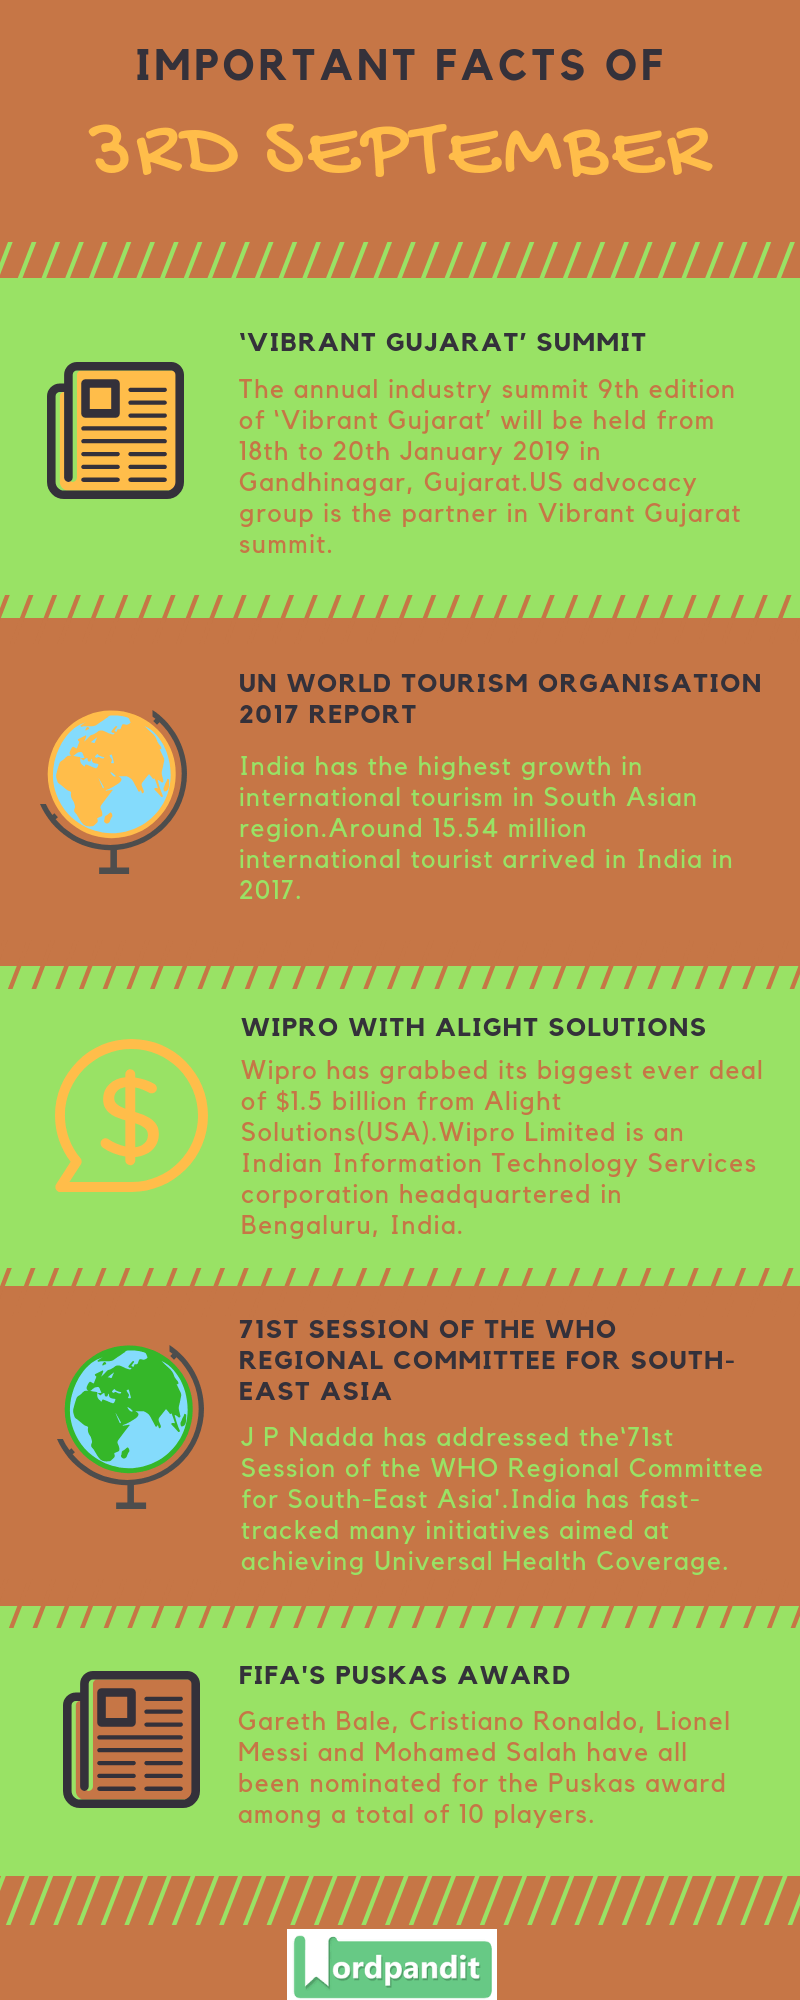 Daily Current Affairs 3 September 2018 Current Affairs Quiz 3 September 2018 Current Affairs Infographic